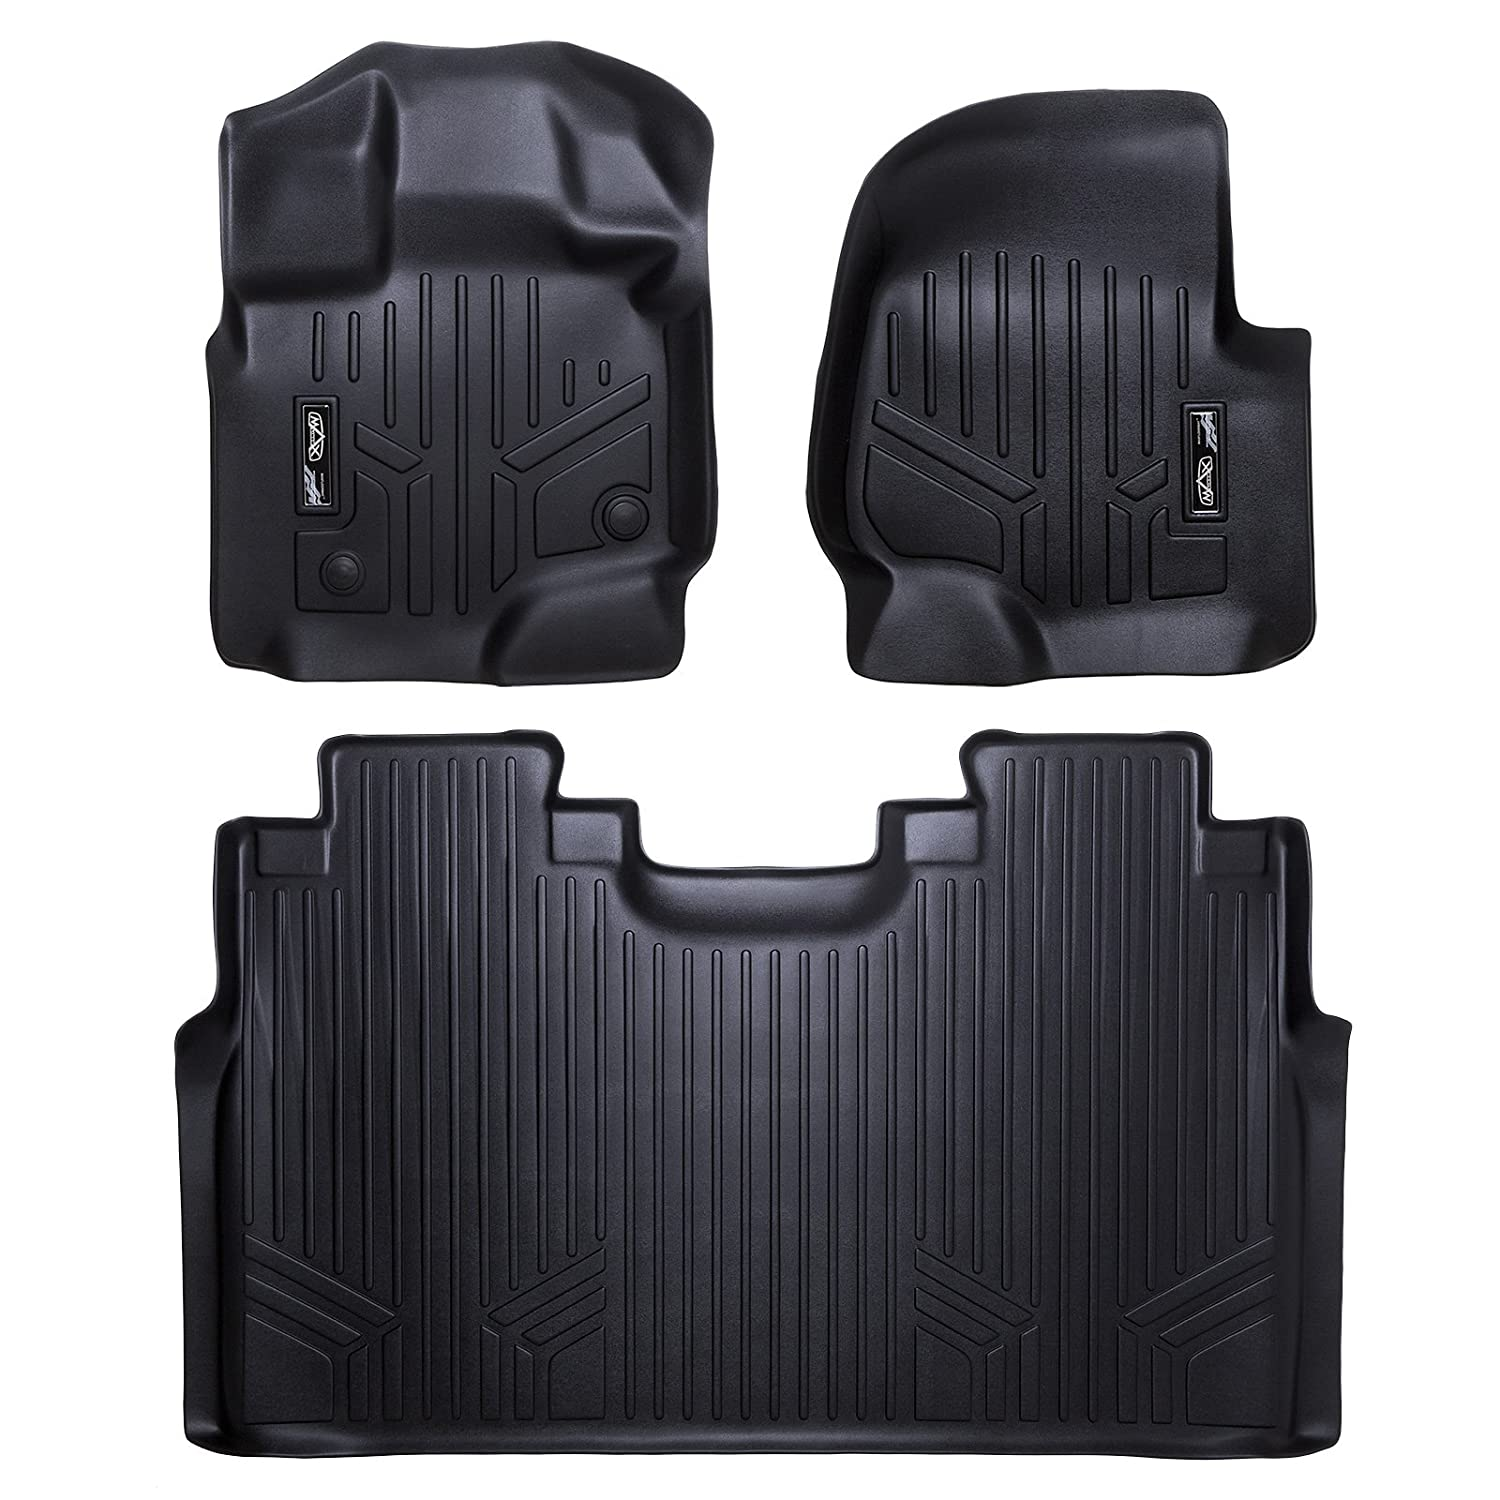 Weathertech floor mats honda pilot 2006 - Maxfloormat Floor Mats For Ford F 150 Supercrew With Front Bucket Seats 2015